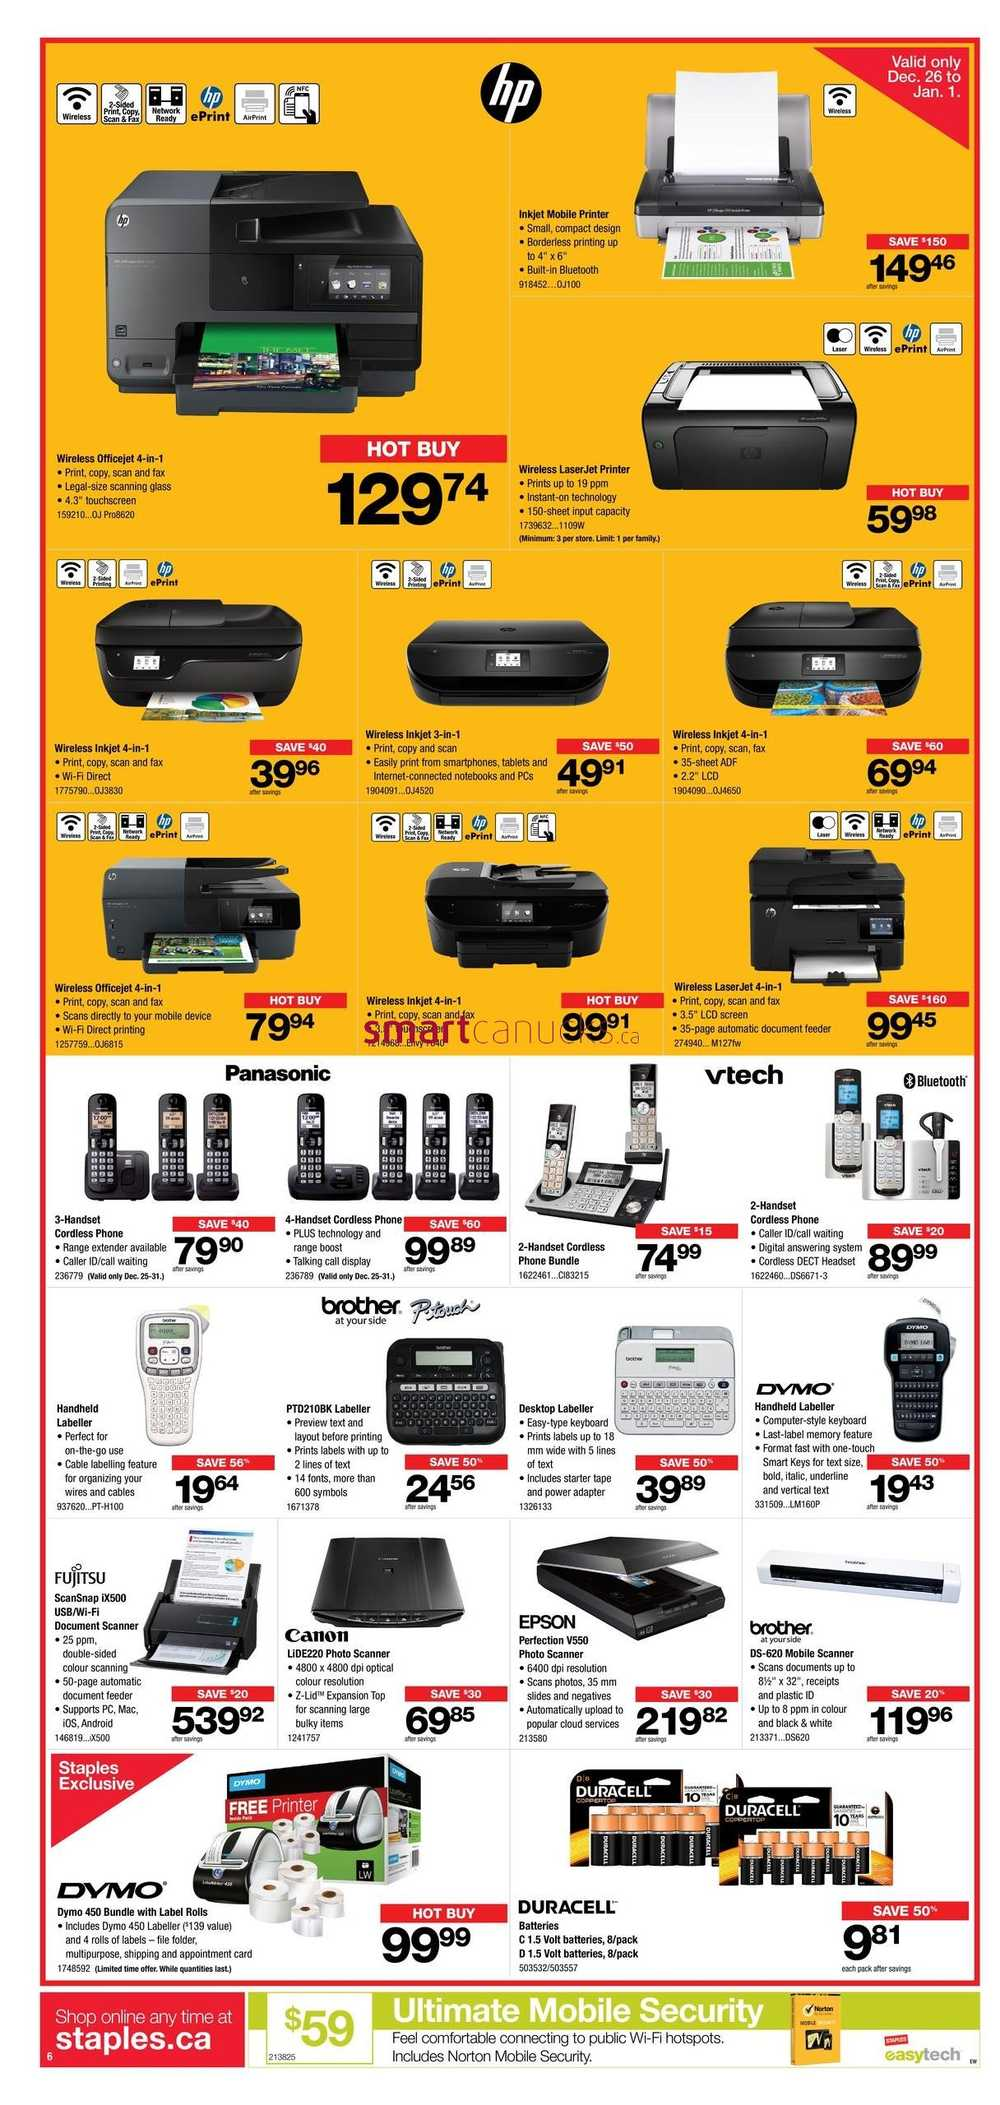 Best deals at staples this week